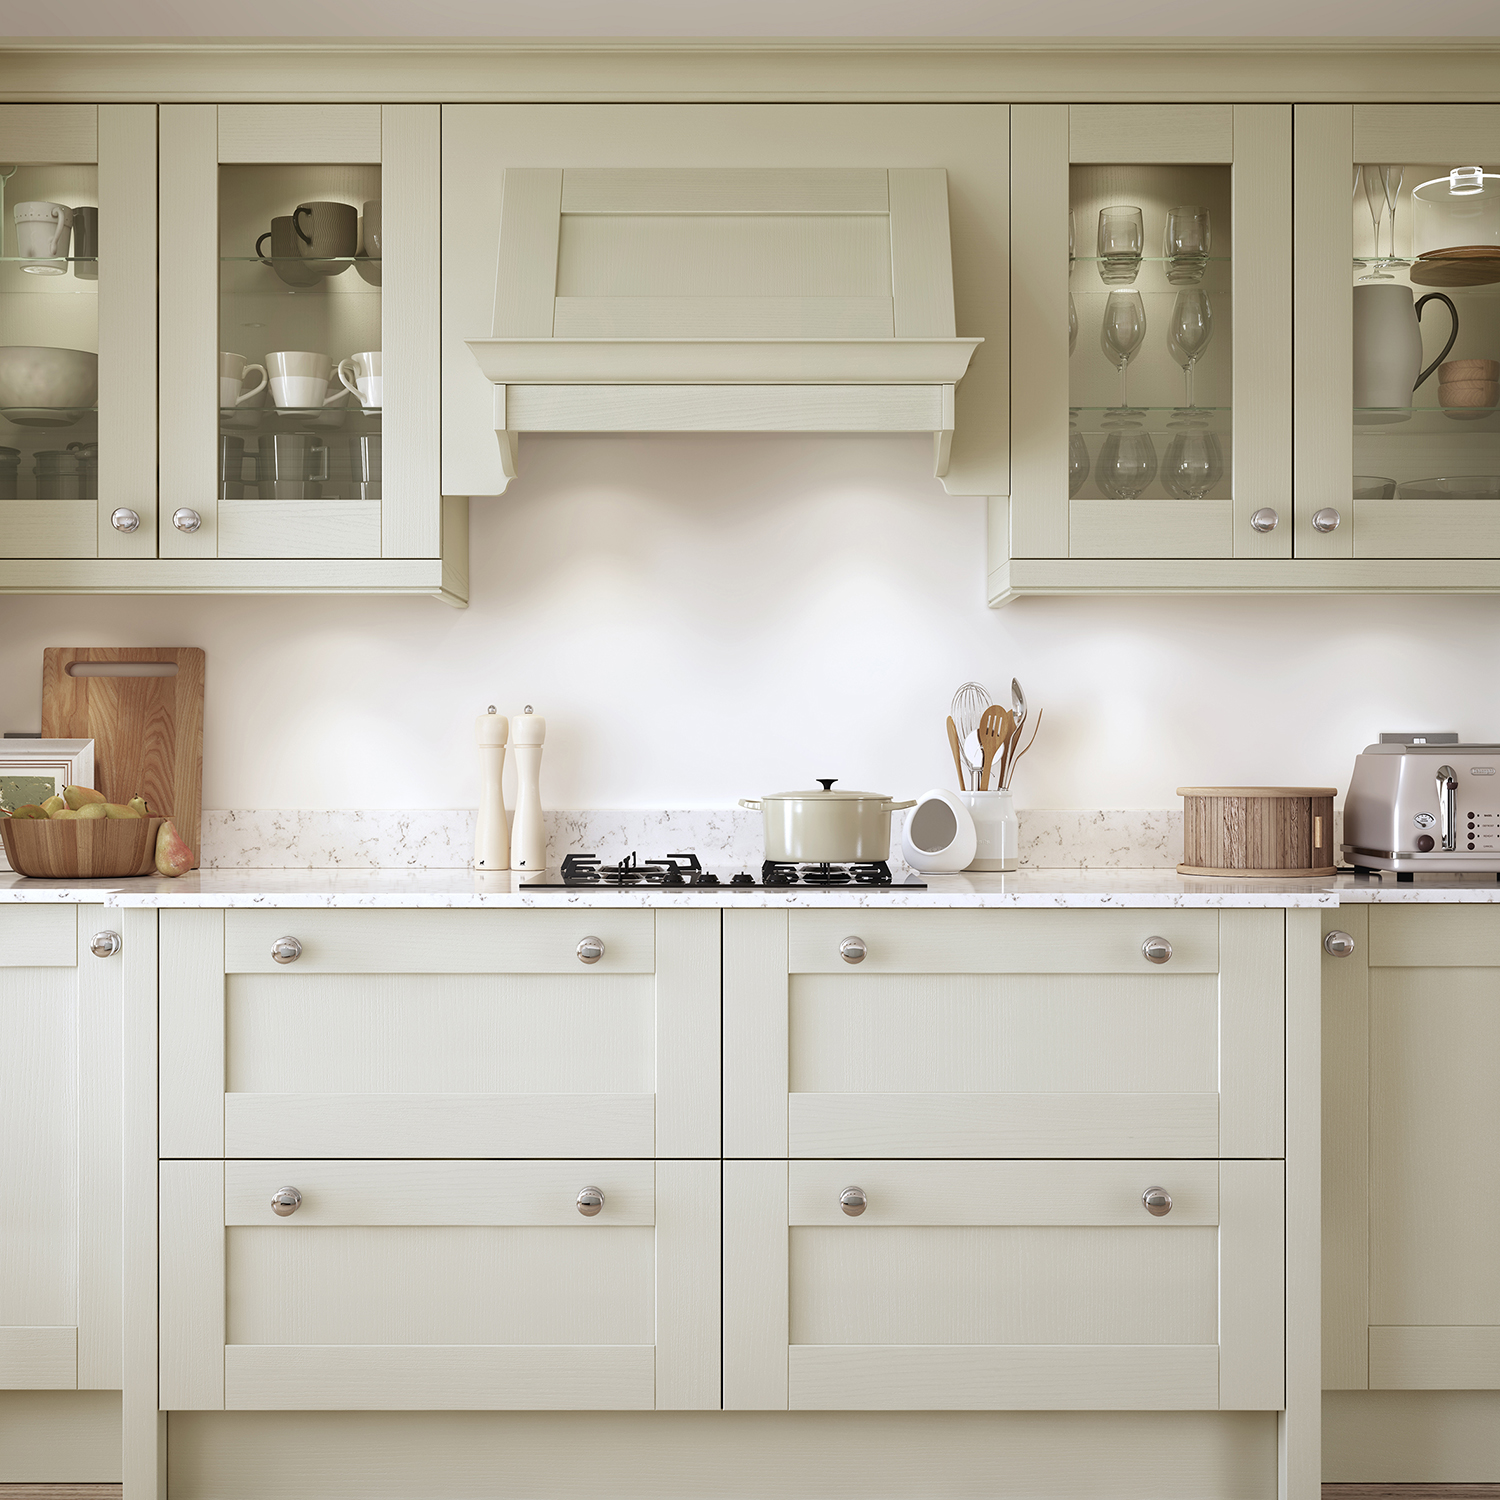 Cheap Cabinets For Kitchen: Madison Mussel Painted Kitchen Doors : Cheap Kitchen Units